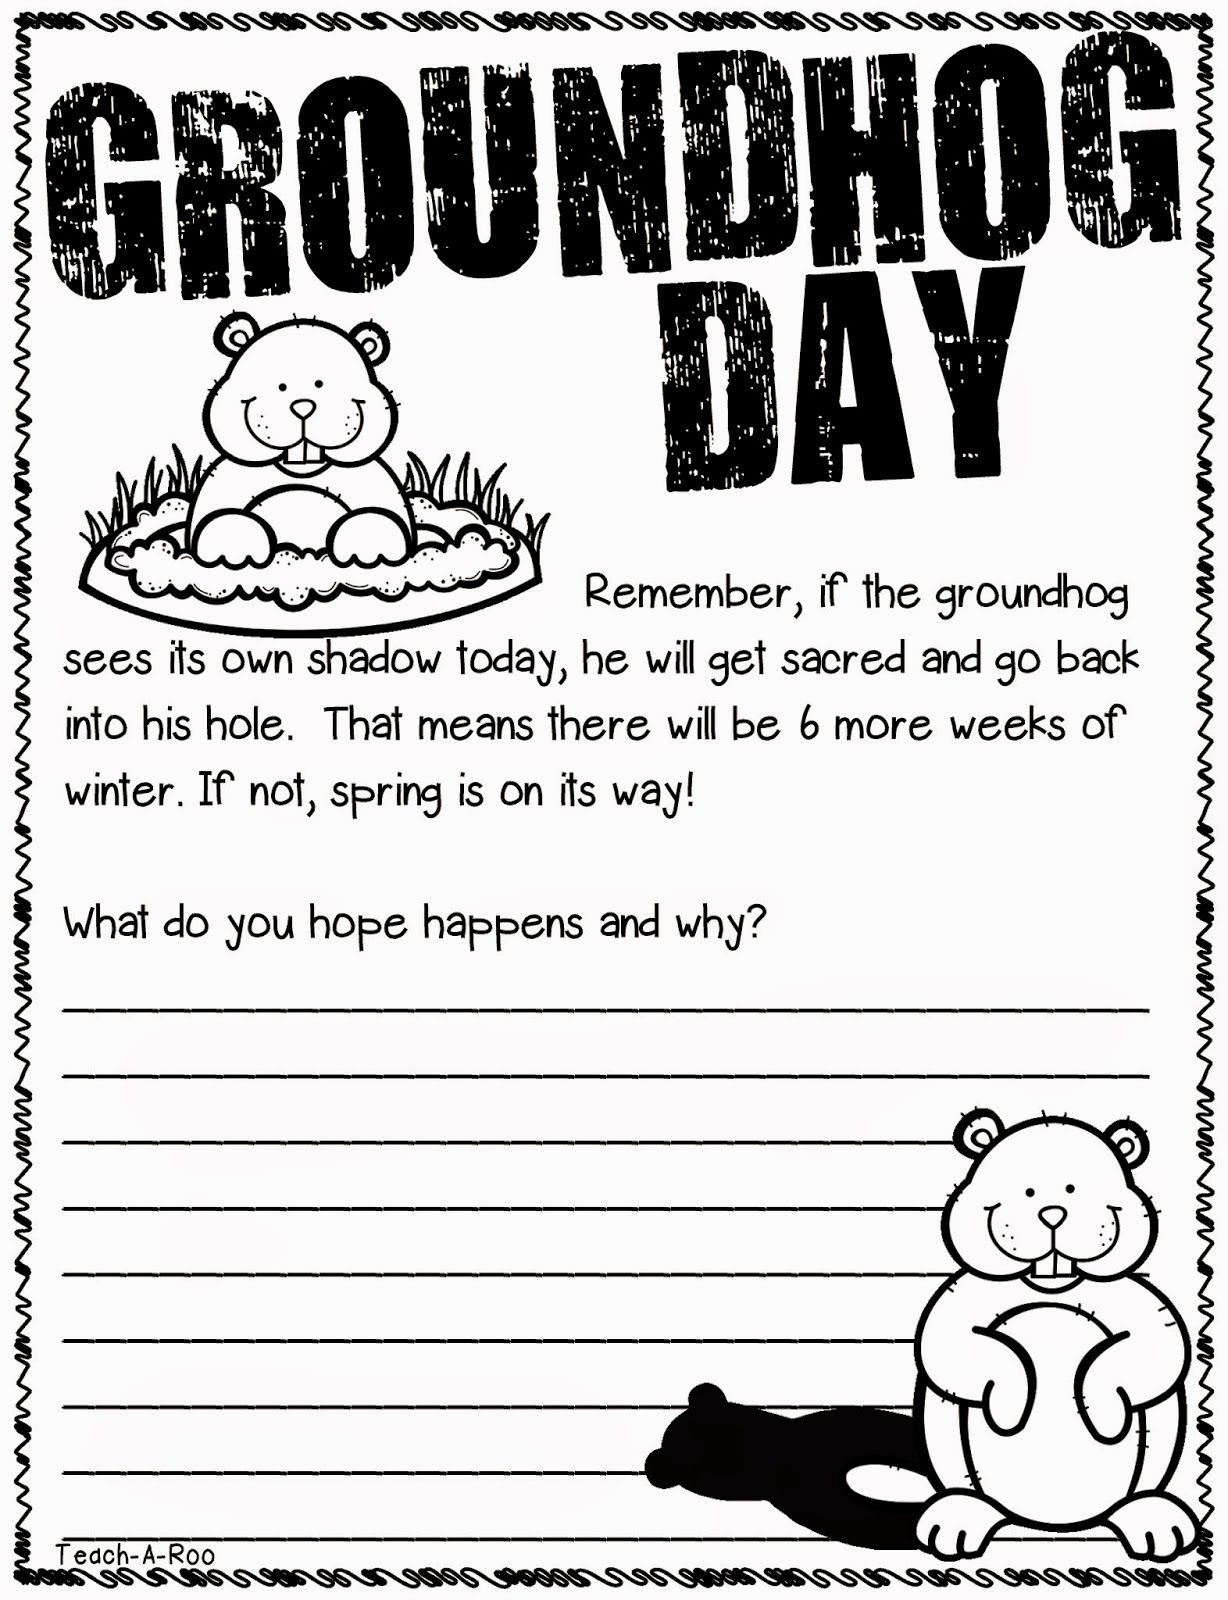 Free Writing Activity For Groundhog Day